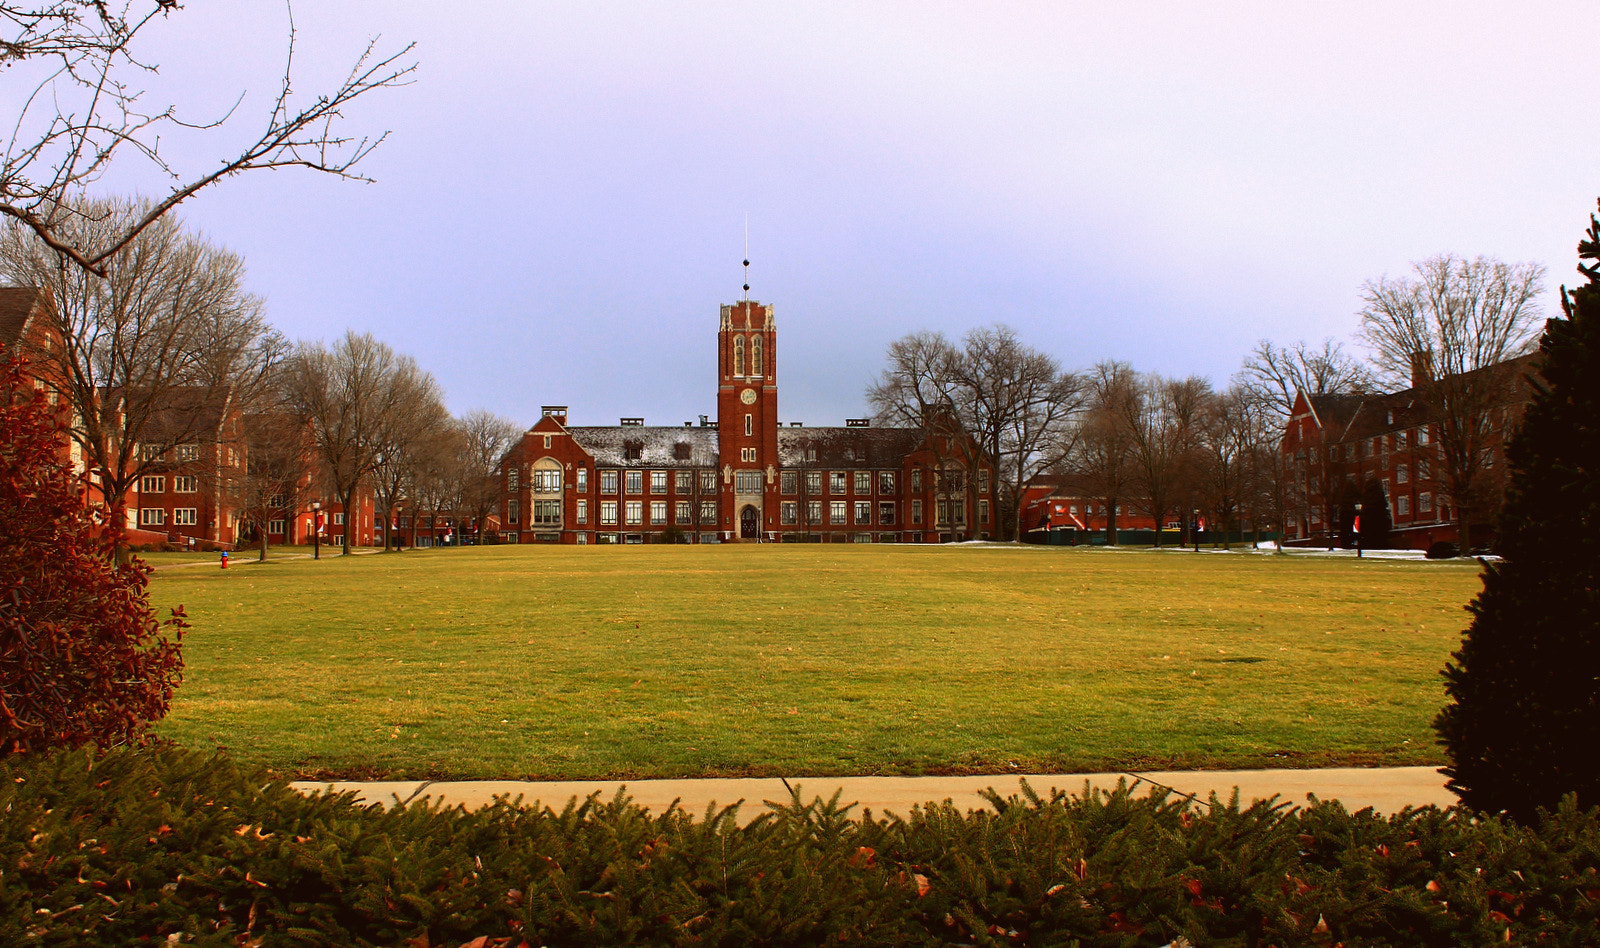 Photograph Cross Campus. by Andrew Stein on 500px